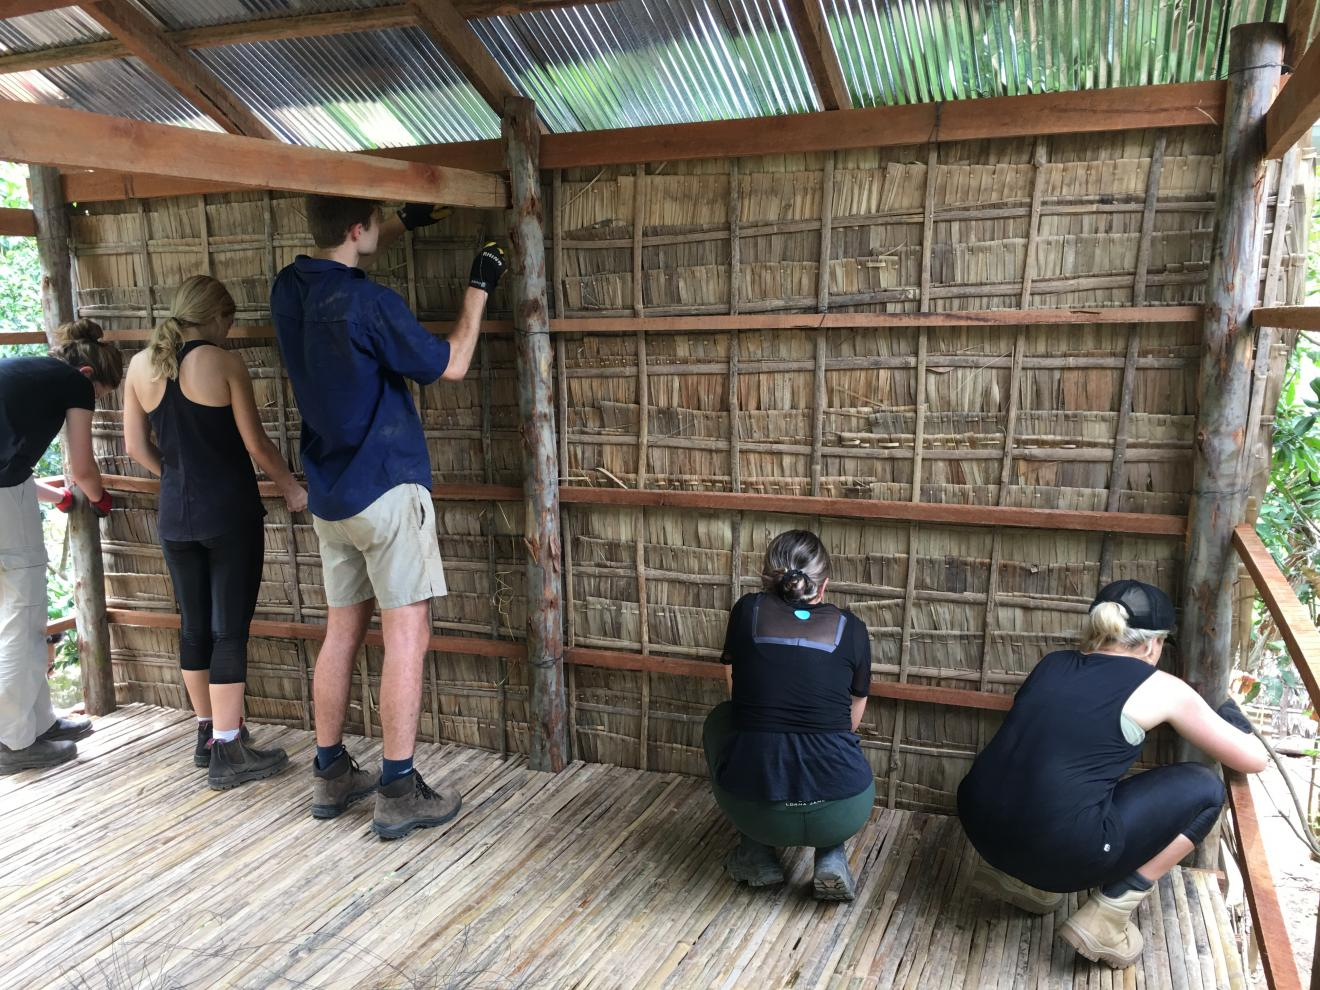 DAB Student Project: Building Houses for Underprivileged Families in Cambodia, by Michael Er